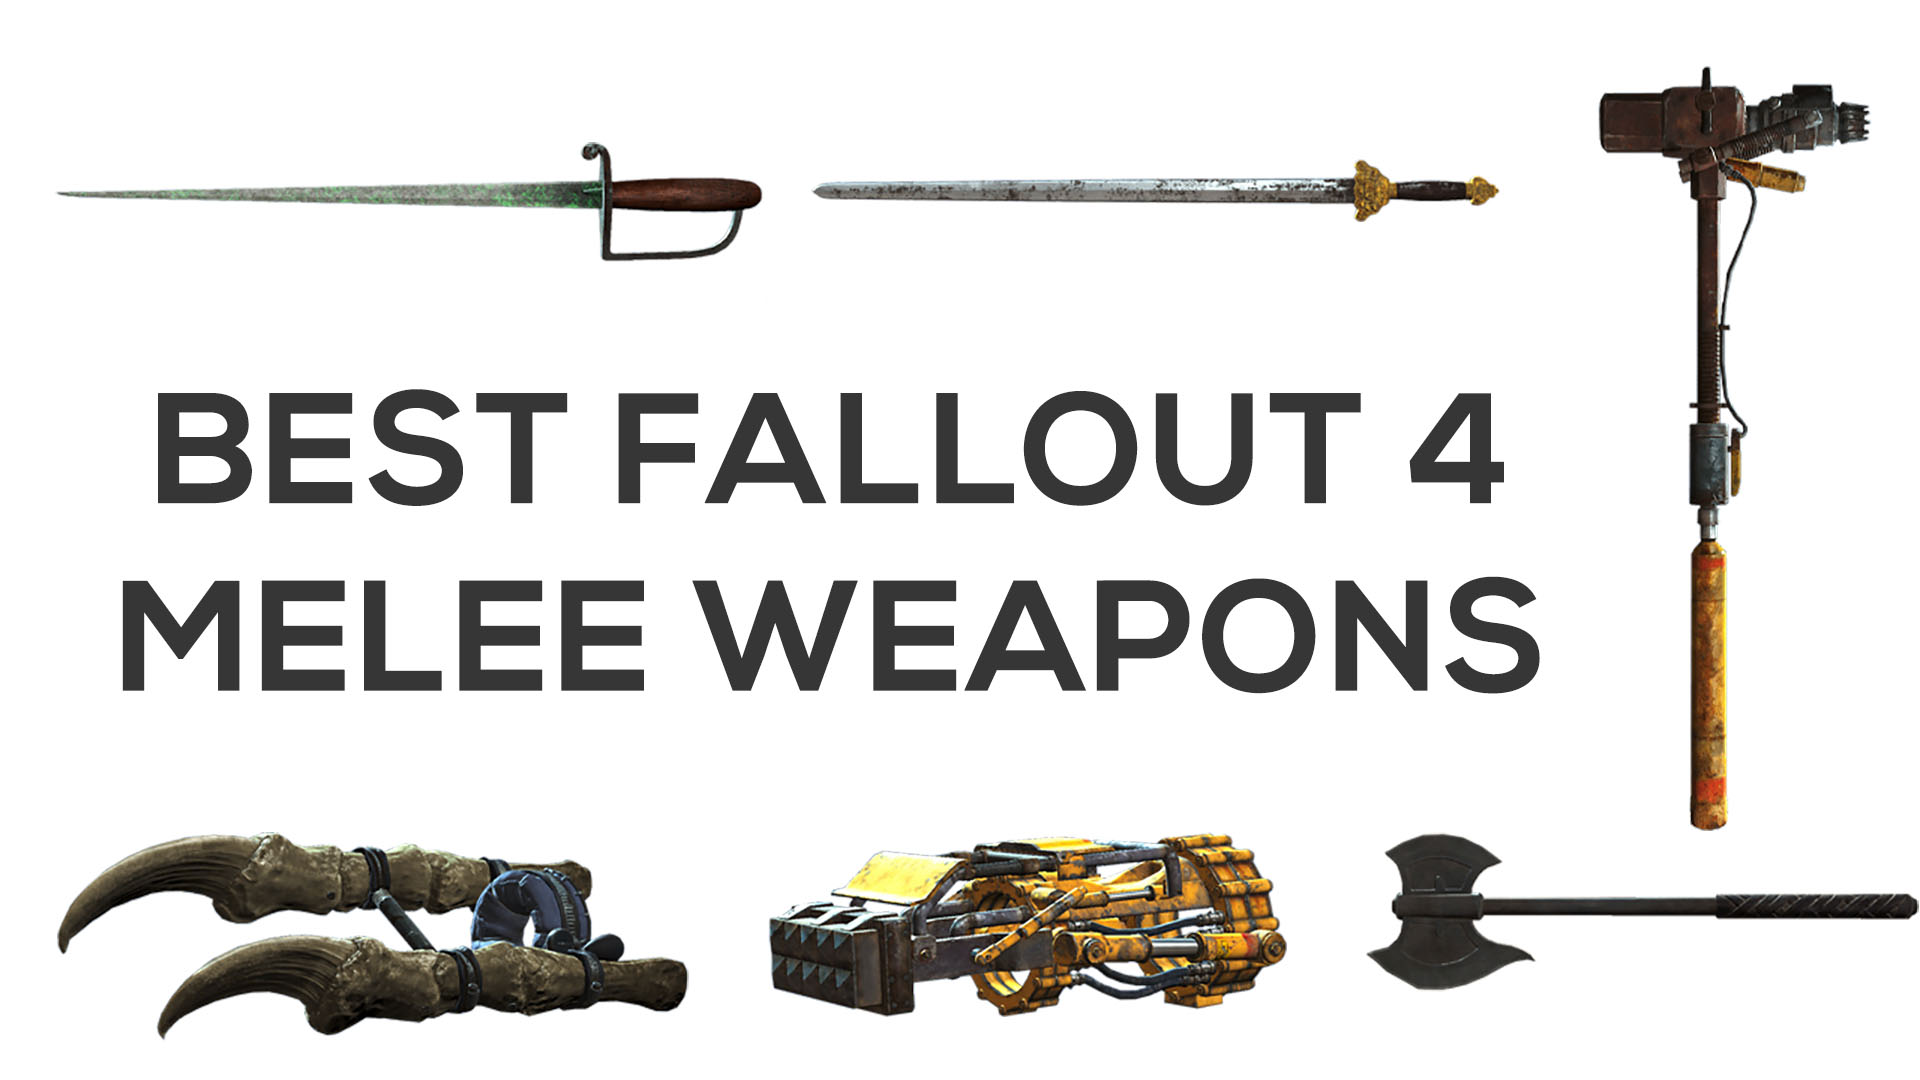 Best Fallout 4 Melee Weapons